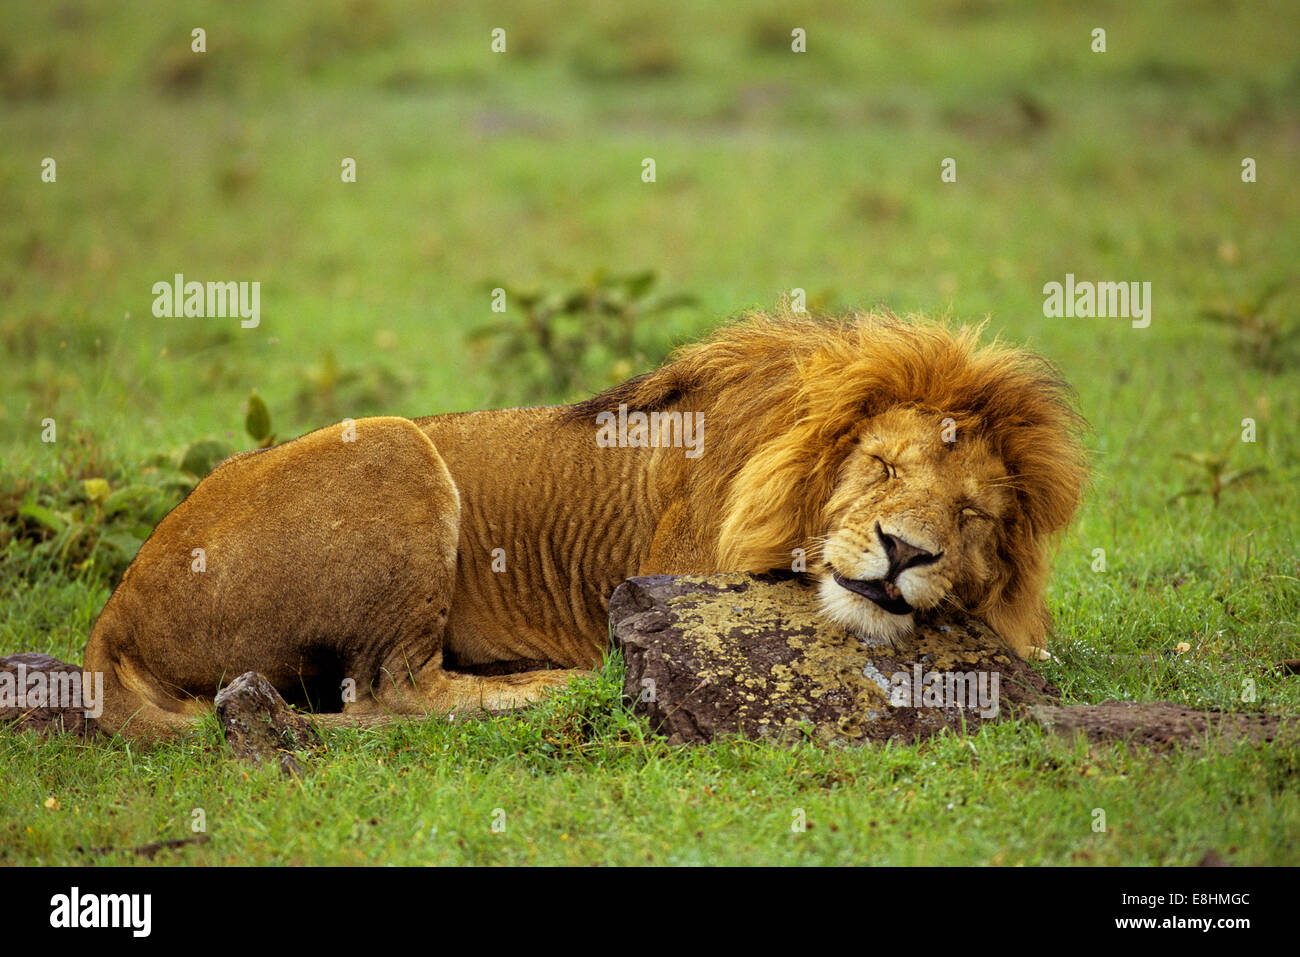 Male lion sleeping on rock - Stock Image